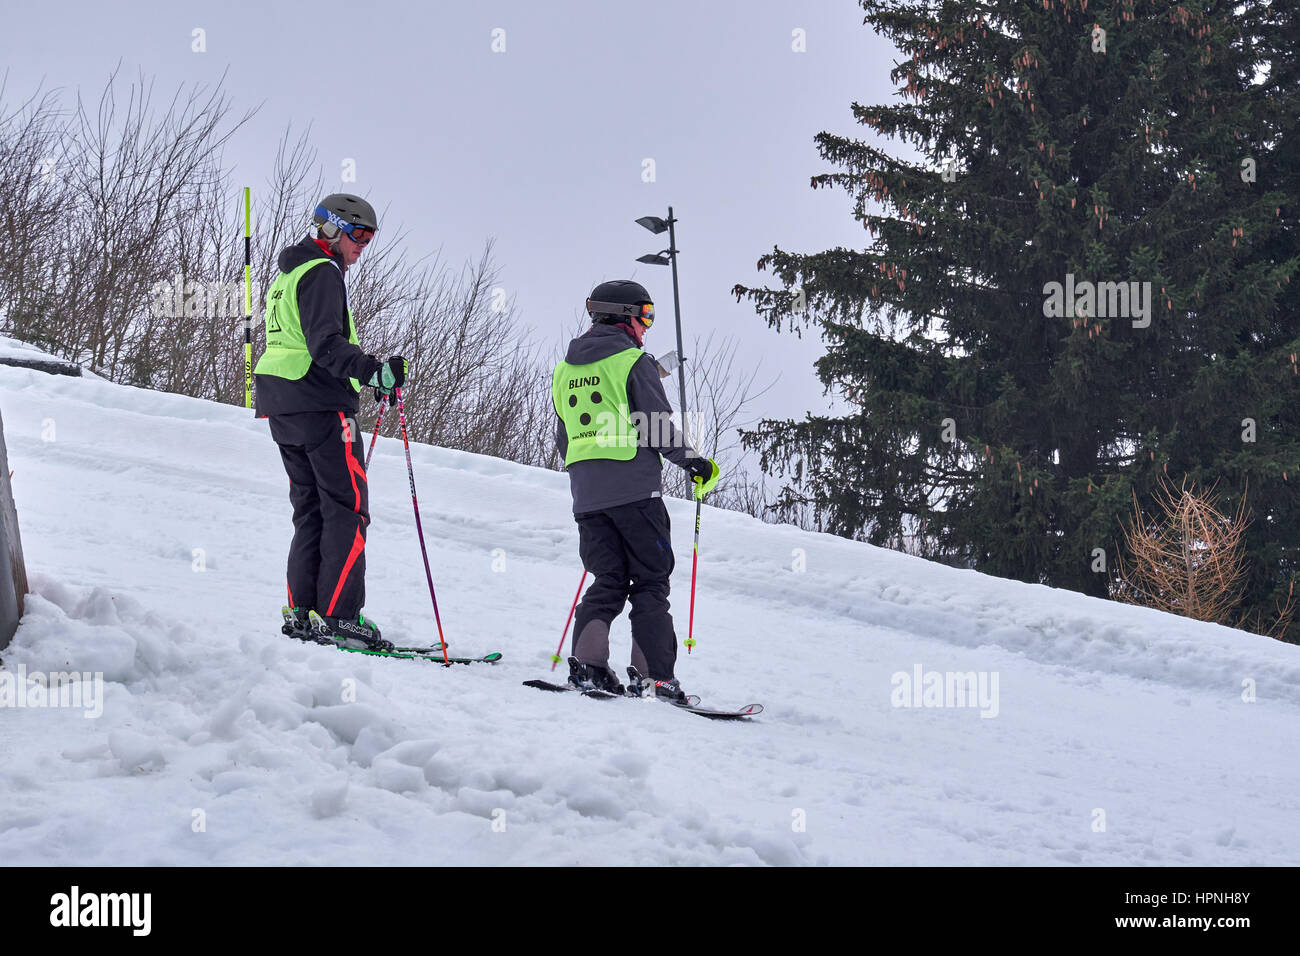 WINTERBERG, GERMANY - FEBRUARY 16, 2017: Young blind downhill skier and his helper on a piste at Ski Carousel Winterberg - Stock Image